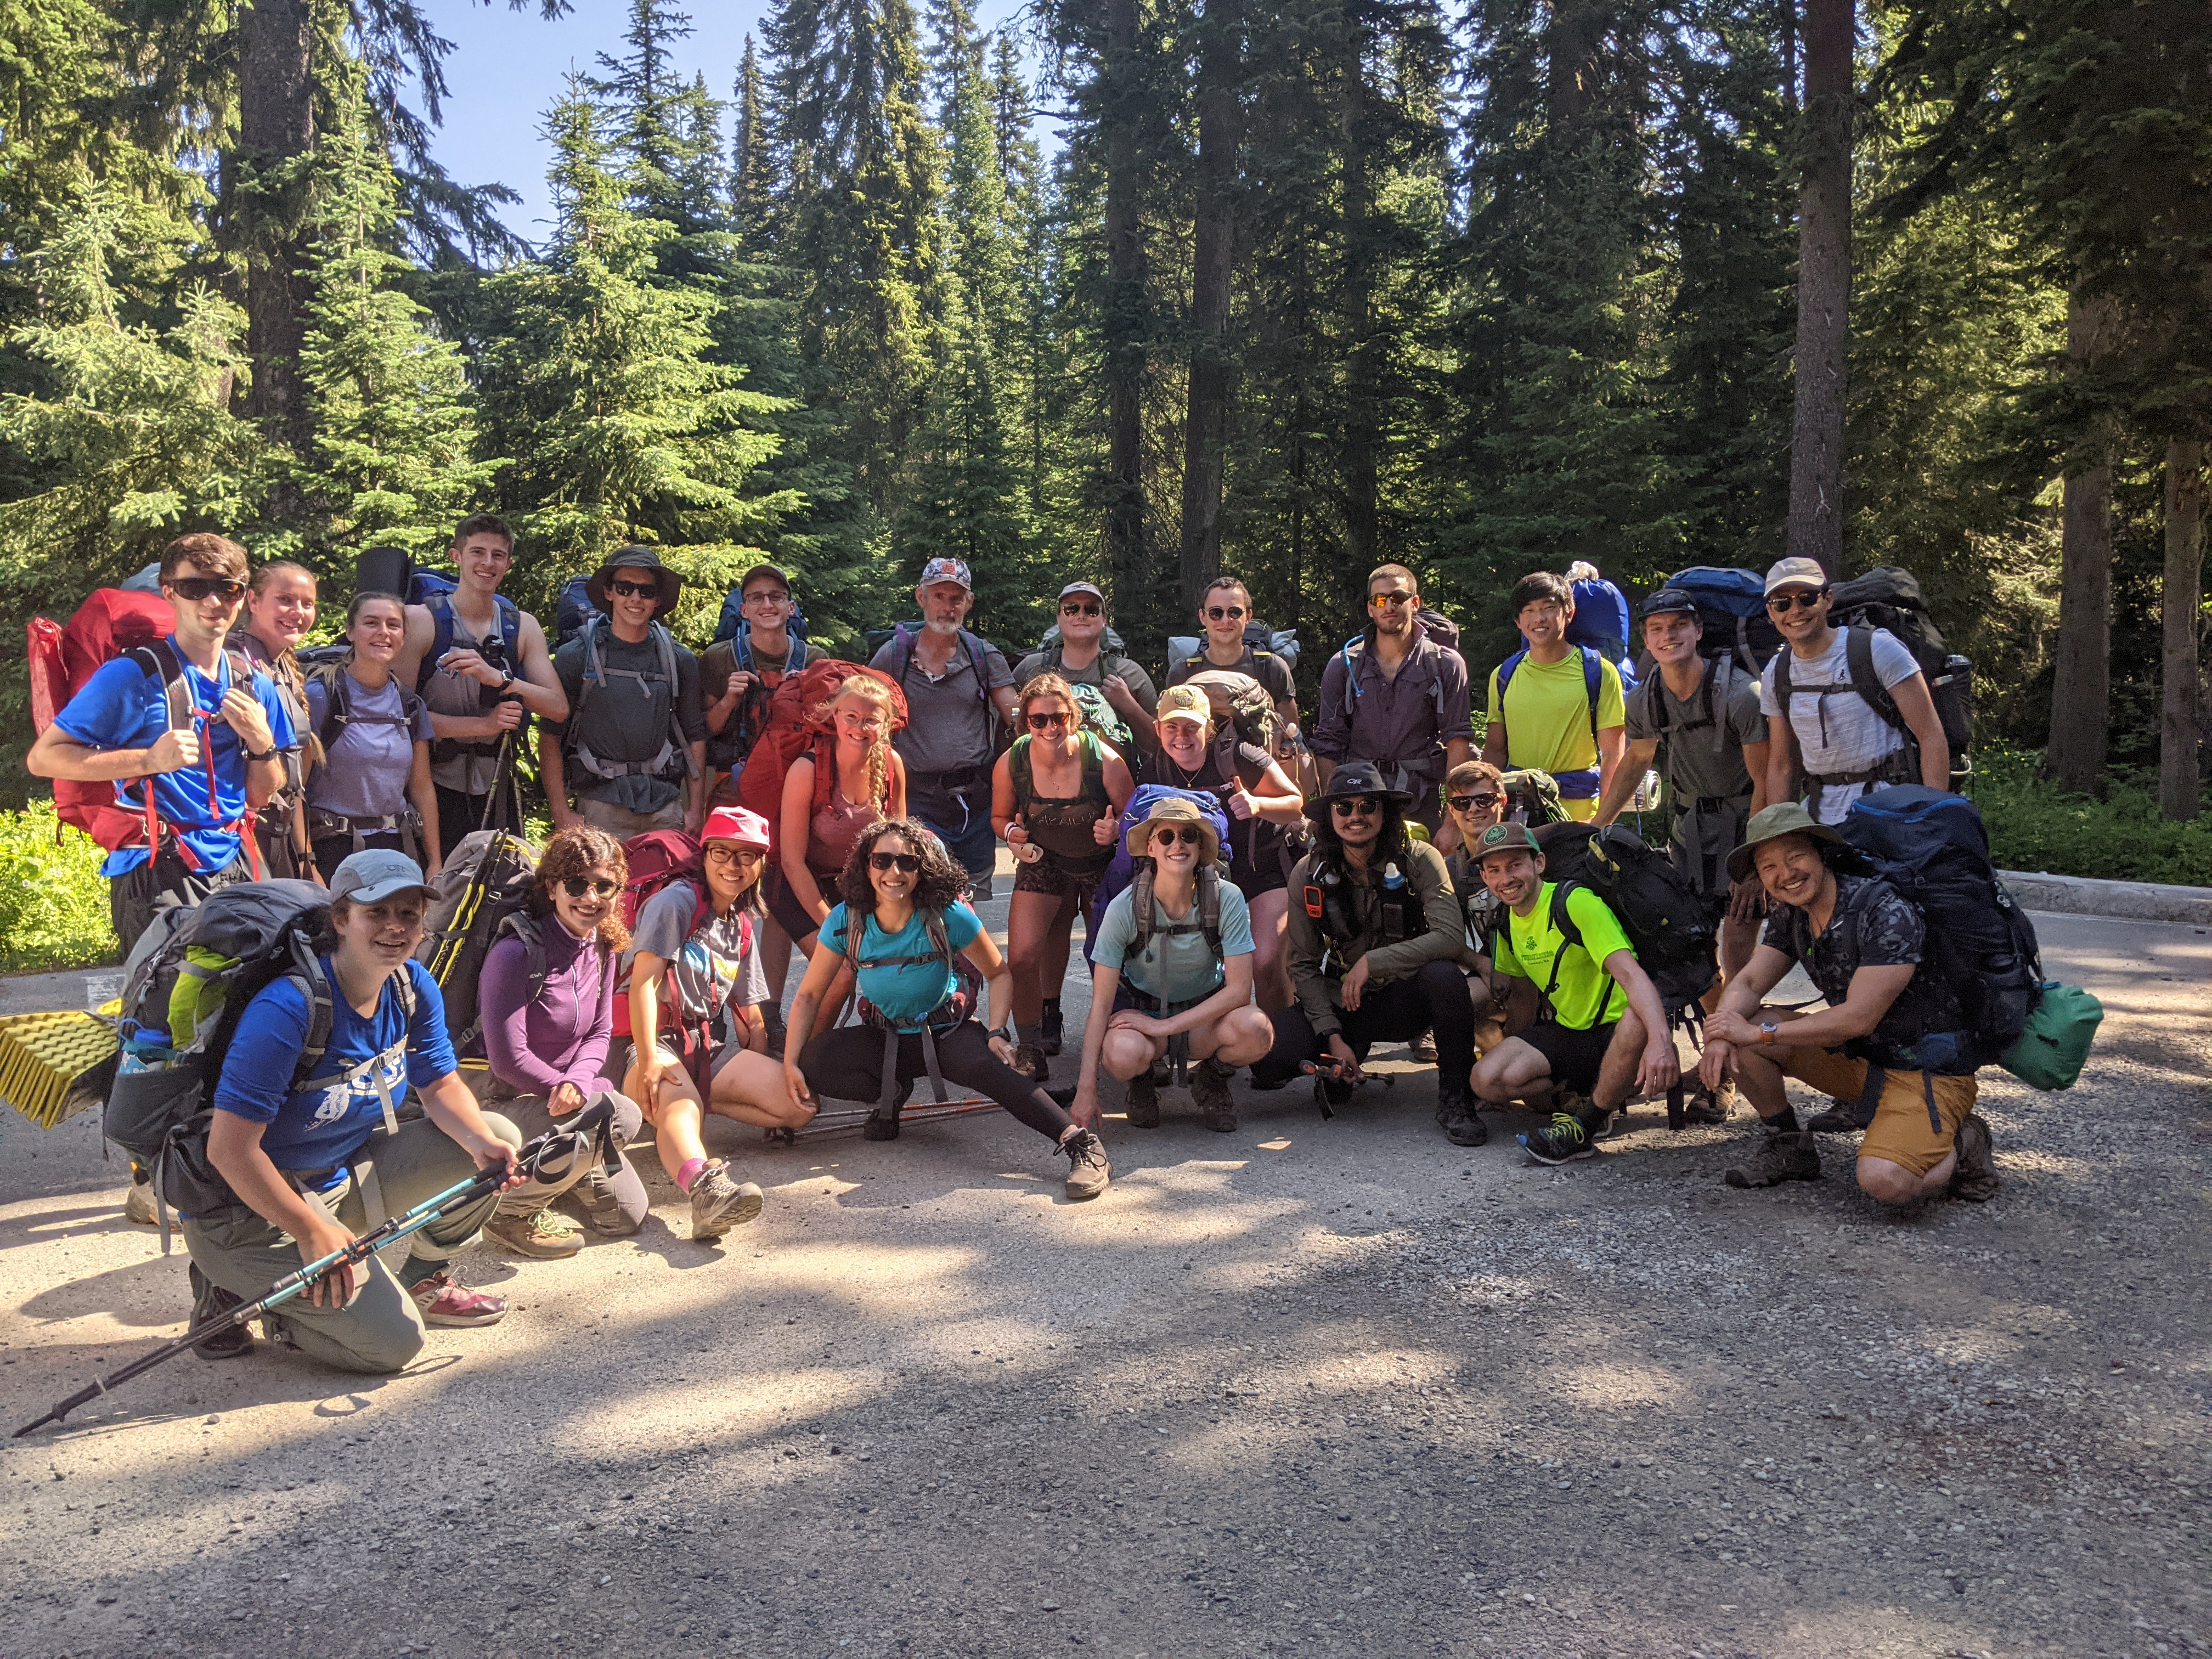 Our full Skyline crew at the trailhead